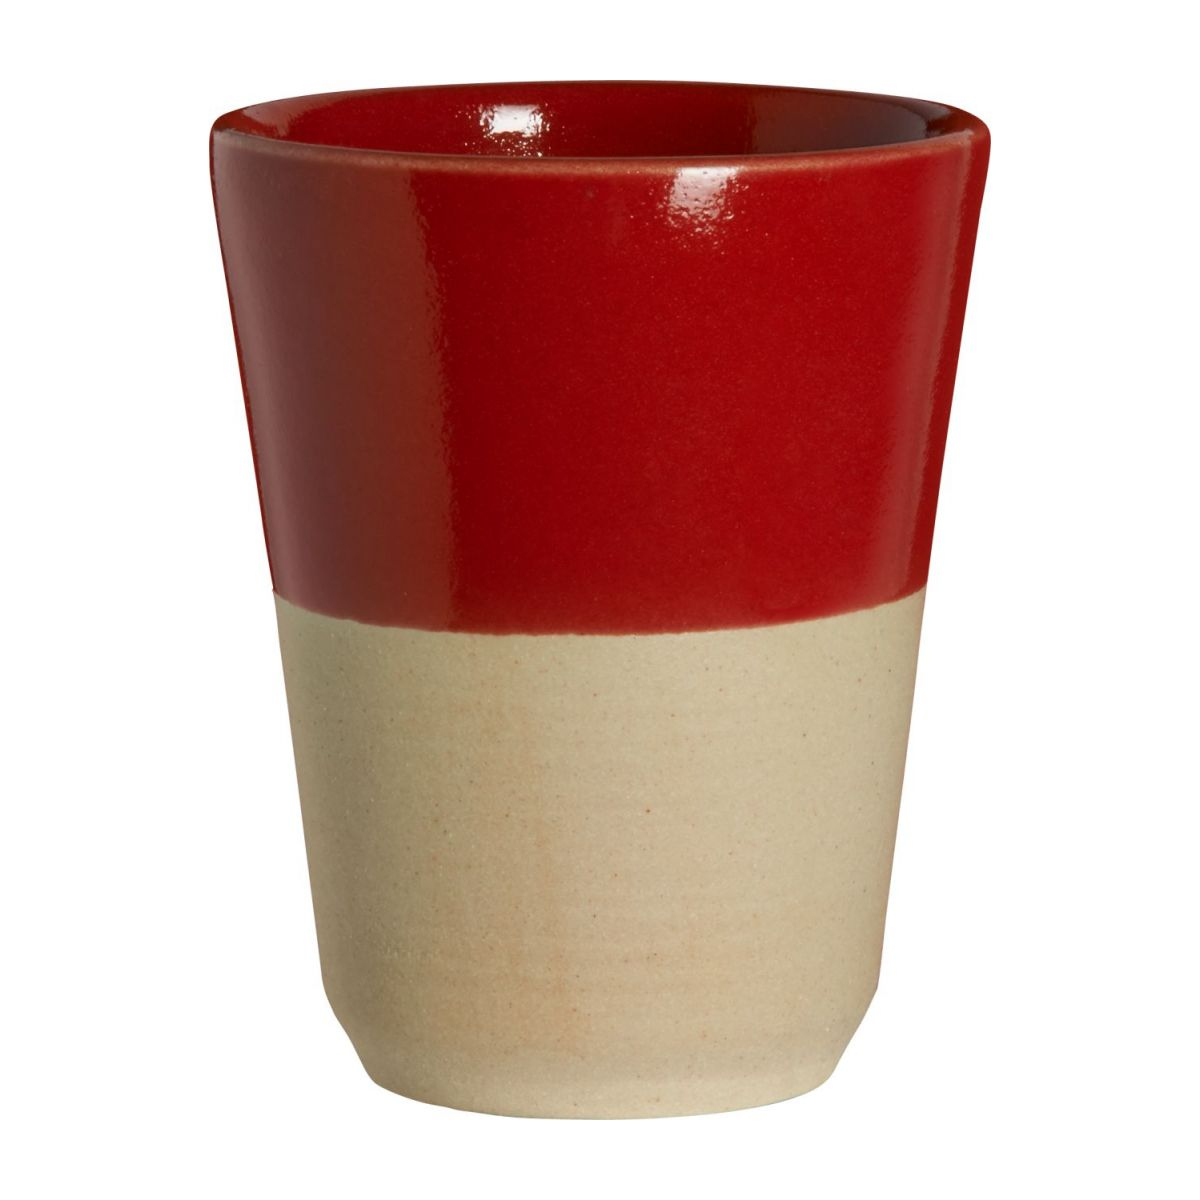 Small tumbler made in sandstone, natural and red n°1